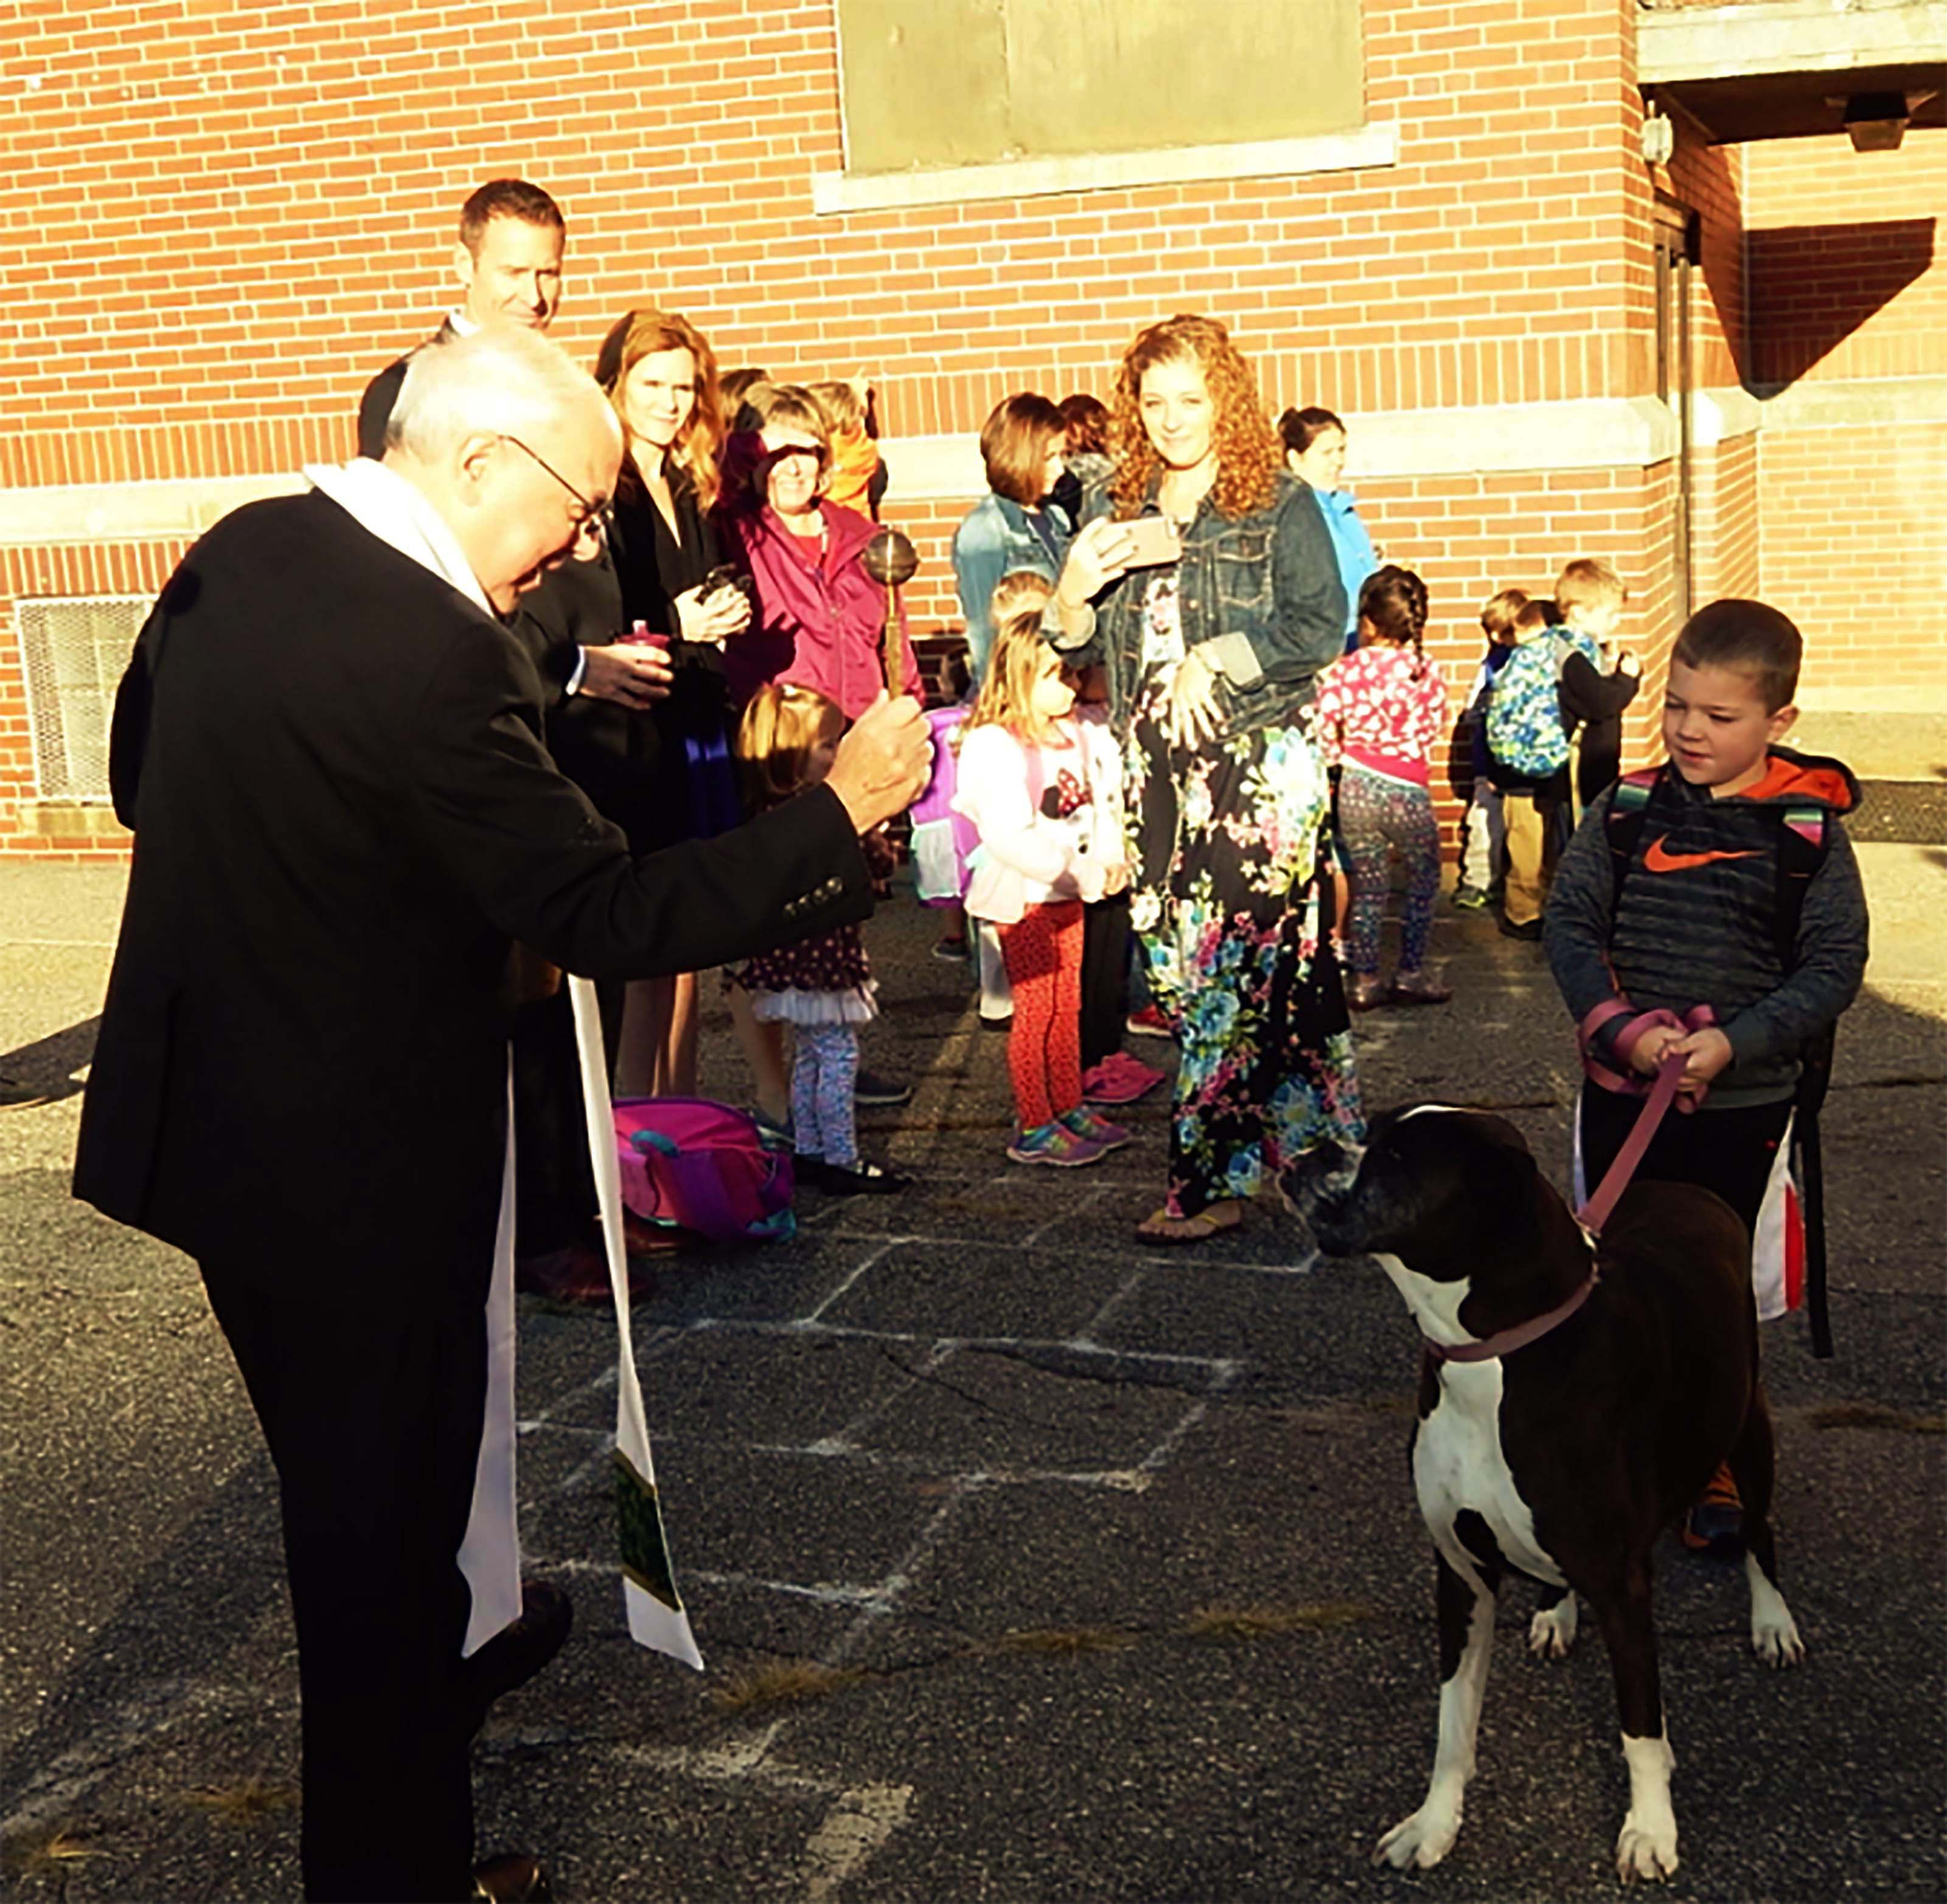 Students and family members brought their pets to St. James School in BIddeford on Wednesday morning to receive the Blessing of the Animals from the Rev. Robert Gaudreau of Good Shepherd Parish. ED PIERCE/Journal Tribune